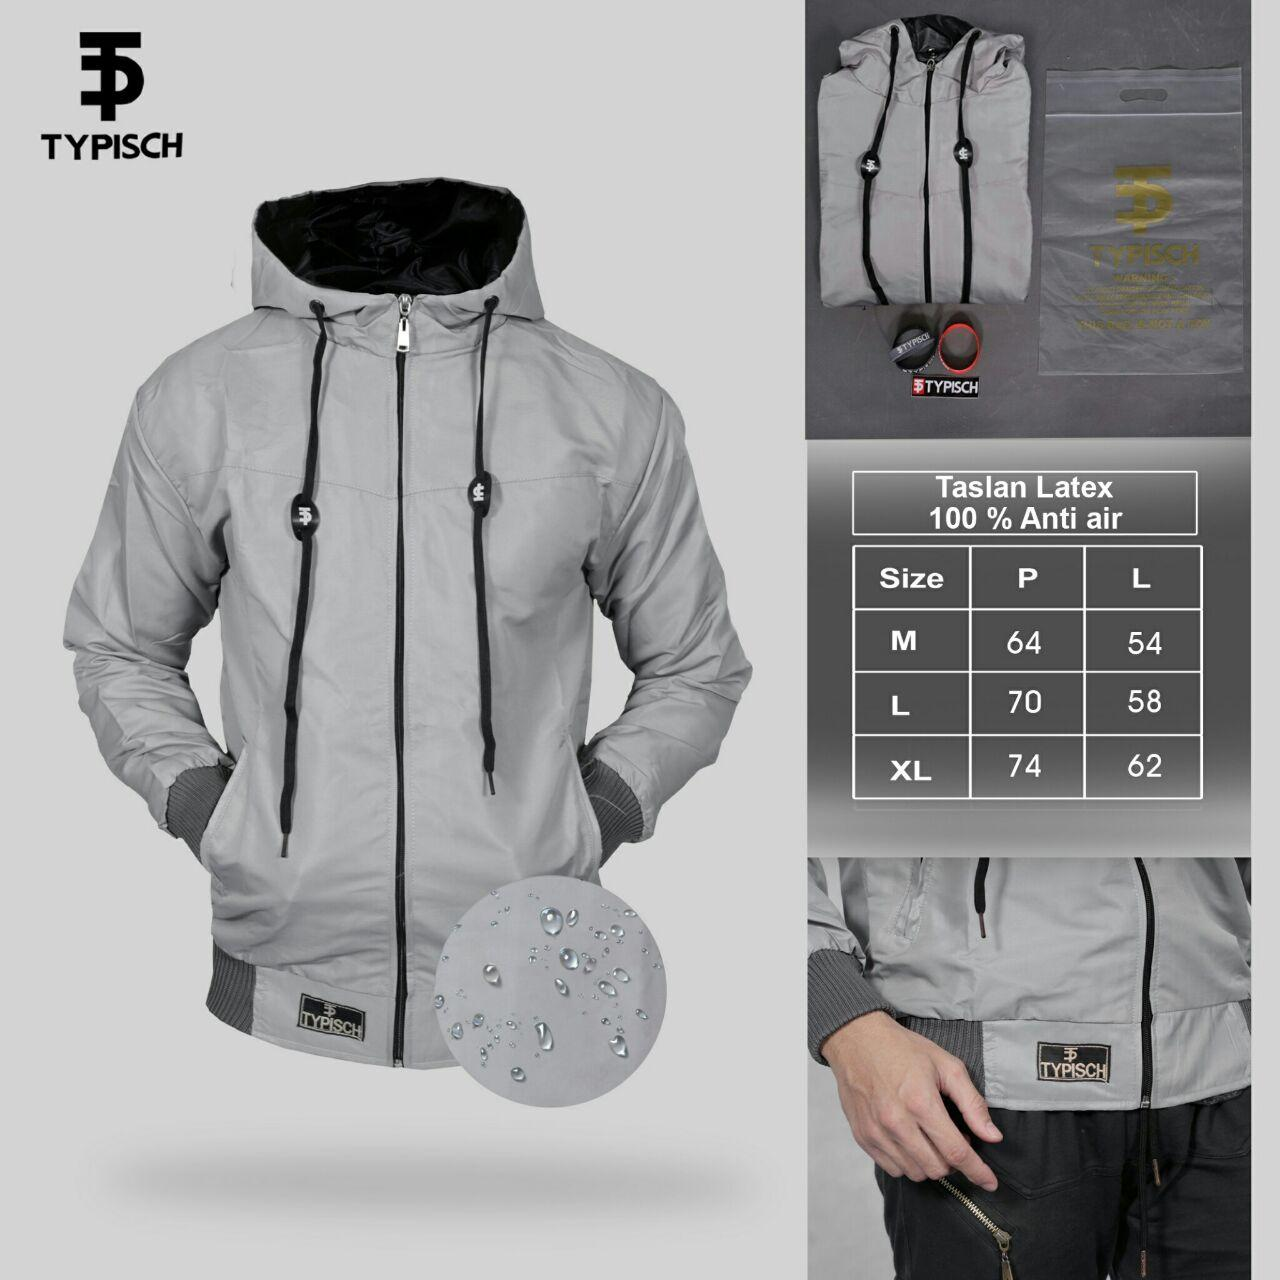 GA JAKET PARASUT WATERPROOF ORIGINAL TYPISCH ANTI AIR ANTI ANGIN KEREN